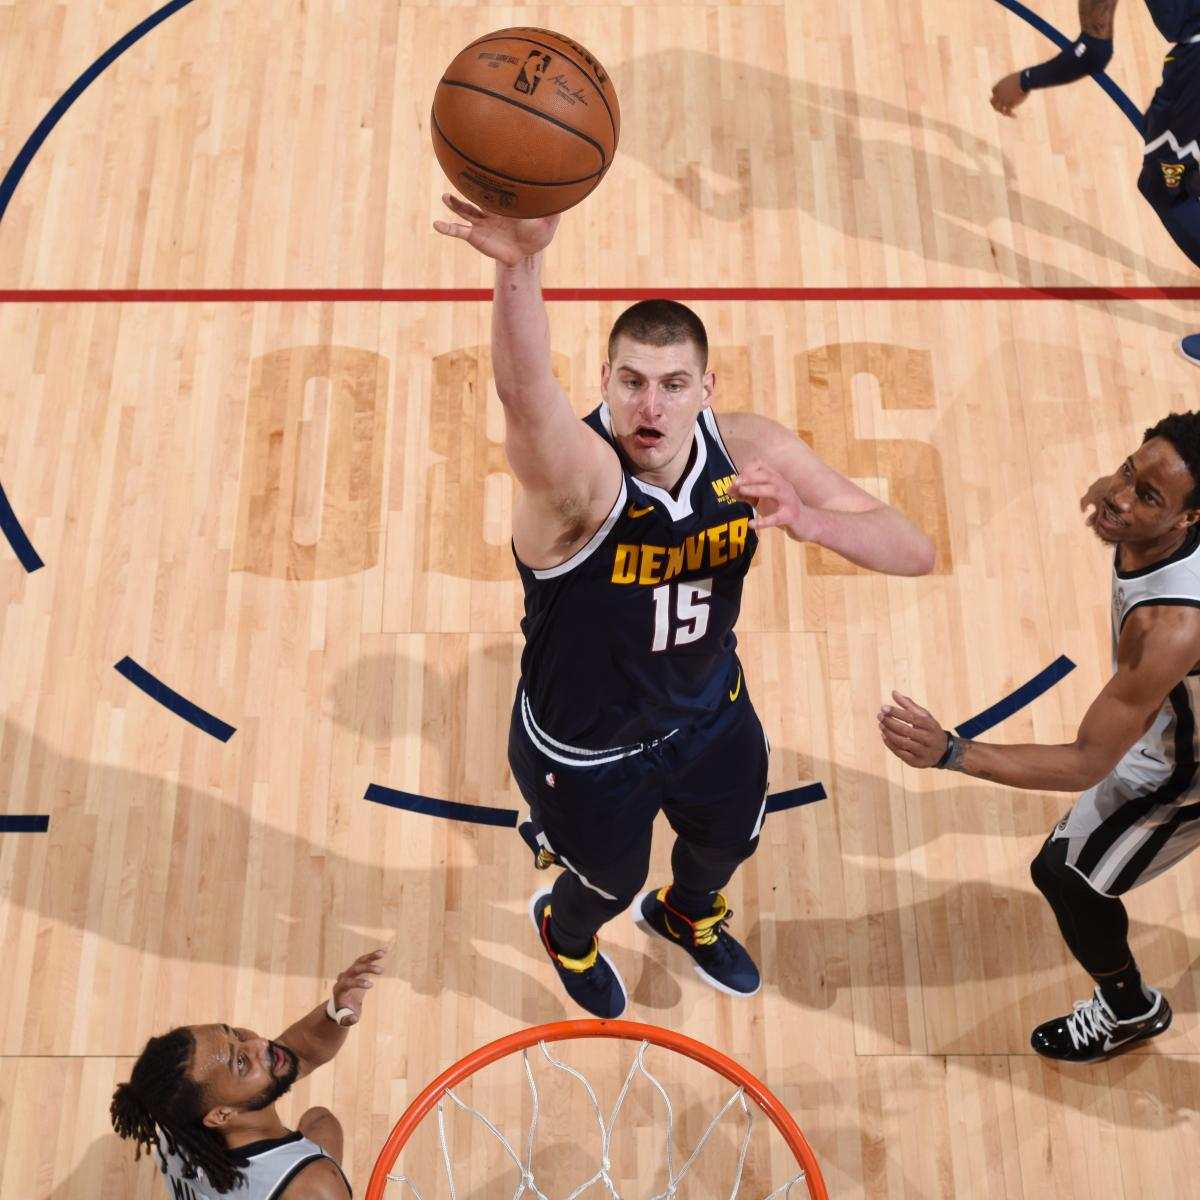 Nuggets Playoff Tickets 2019: Jokic Pushes Nuggets Past Spurs In Game 7, But What About